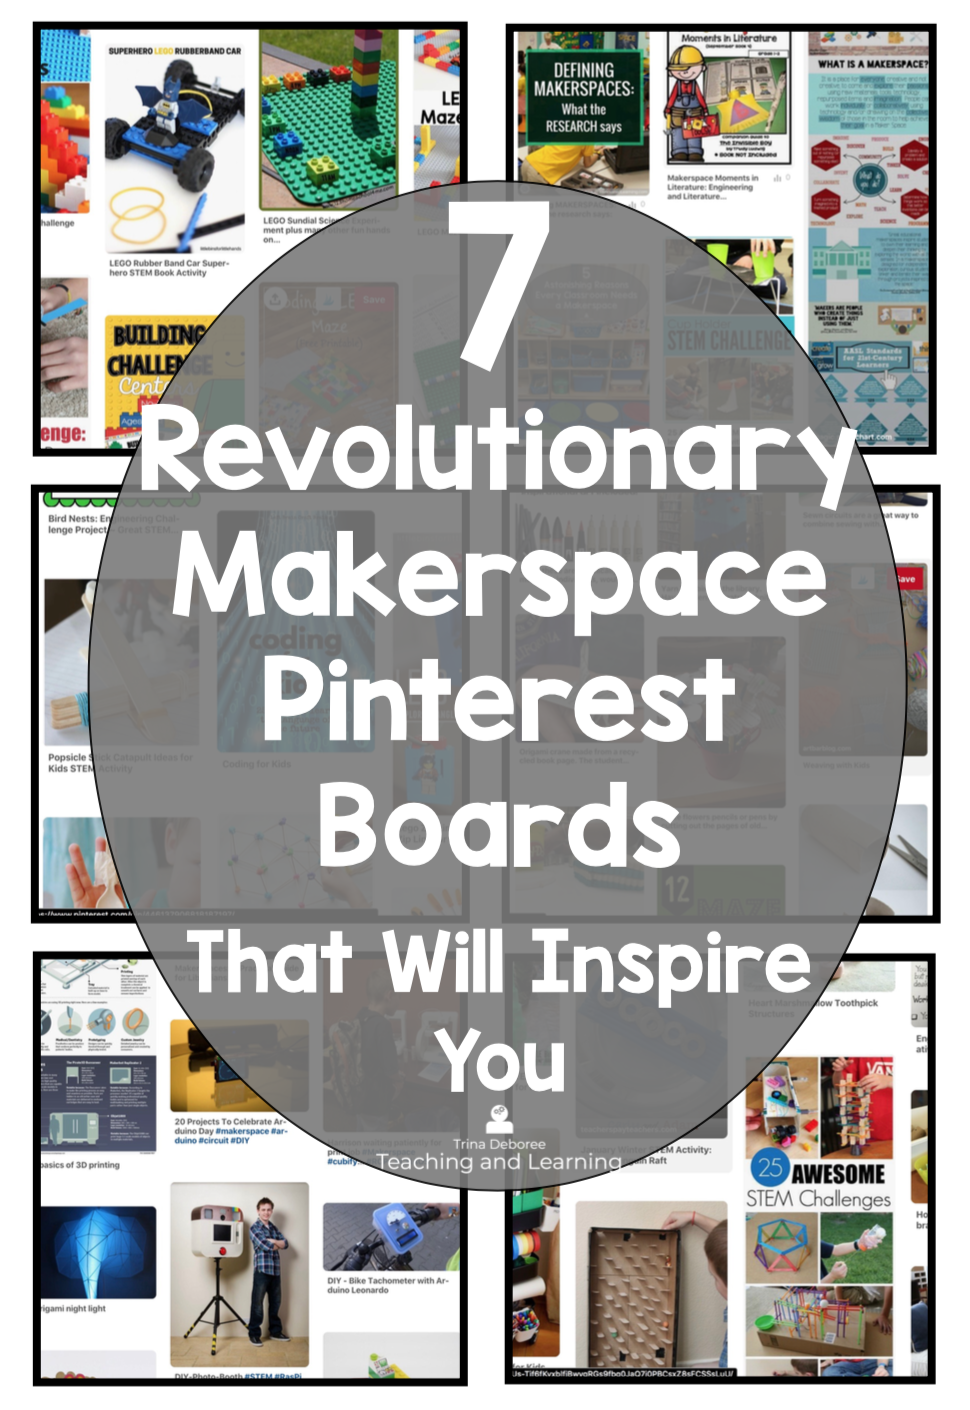 7 Revolutionary Makerspace Pinterest Boards That Will Inspire You.png